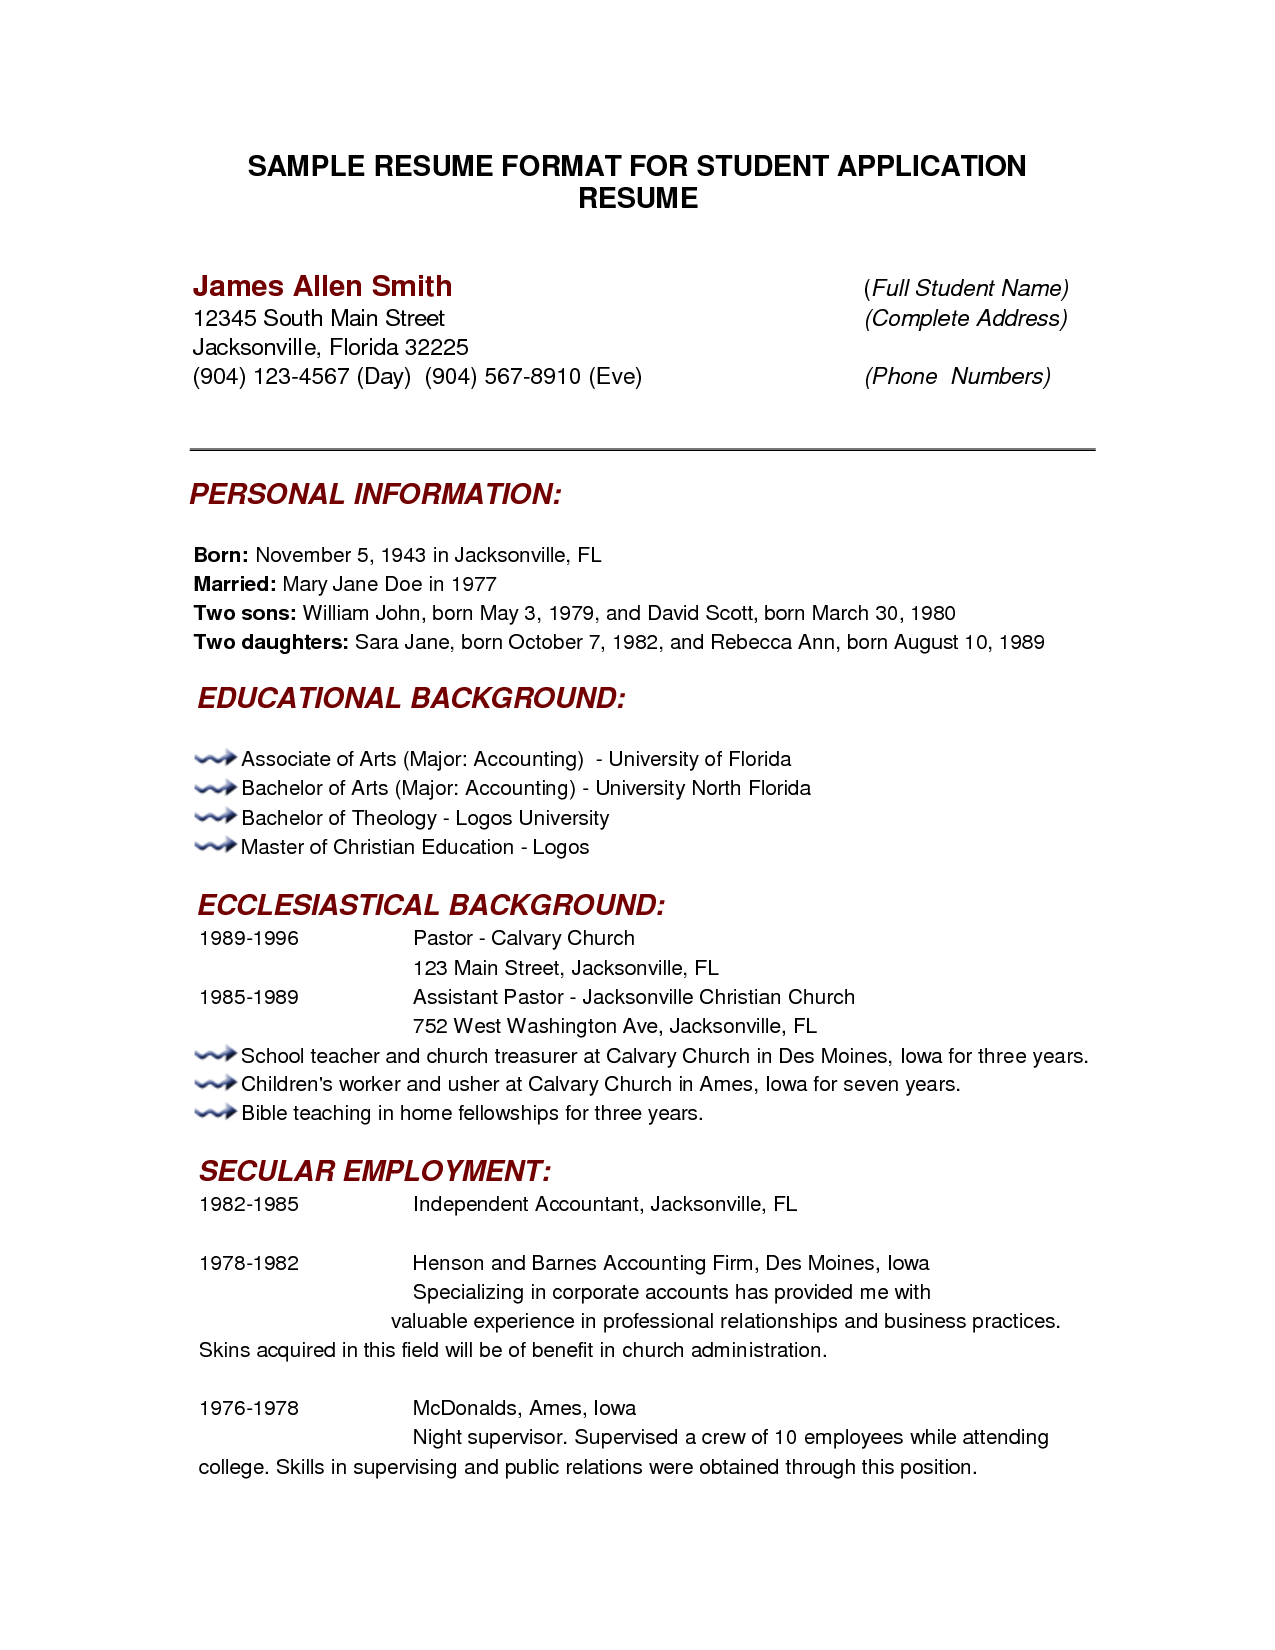 Resume Template For College Students http//www